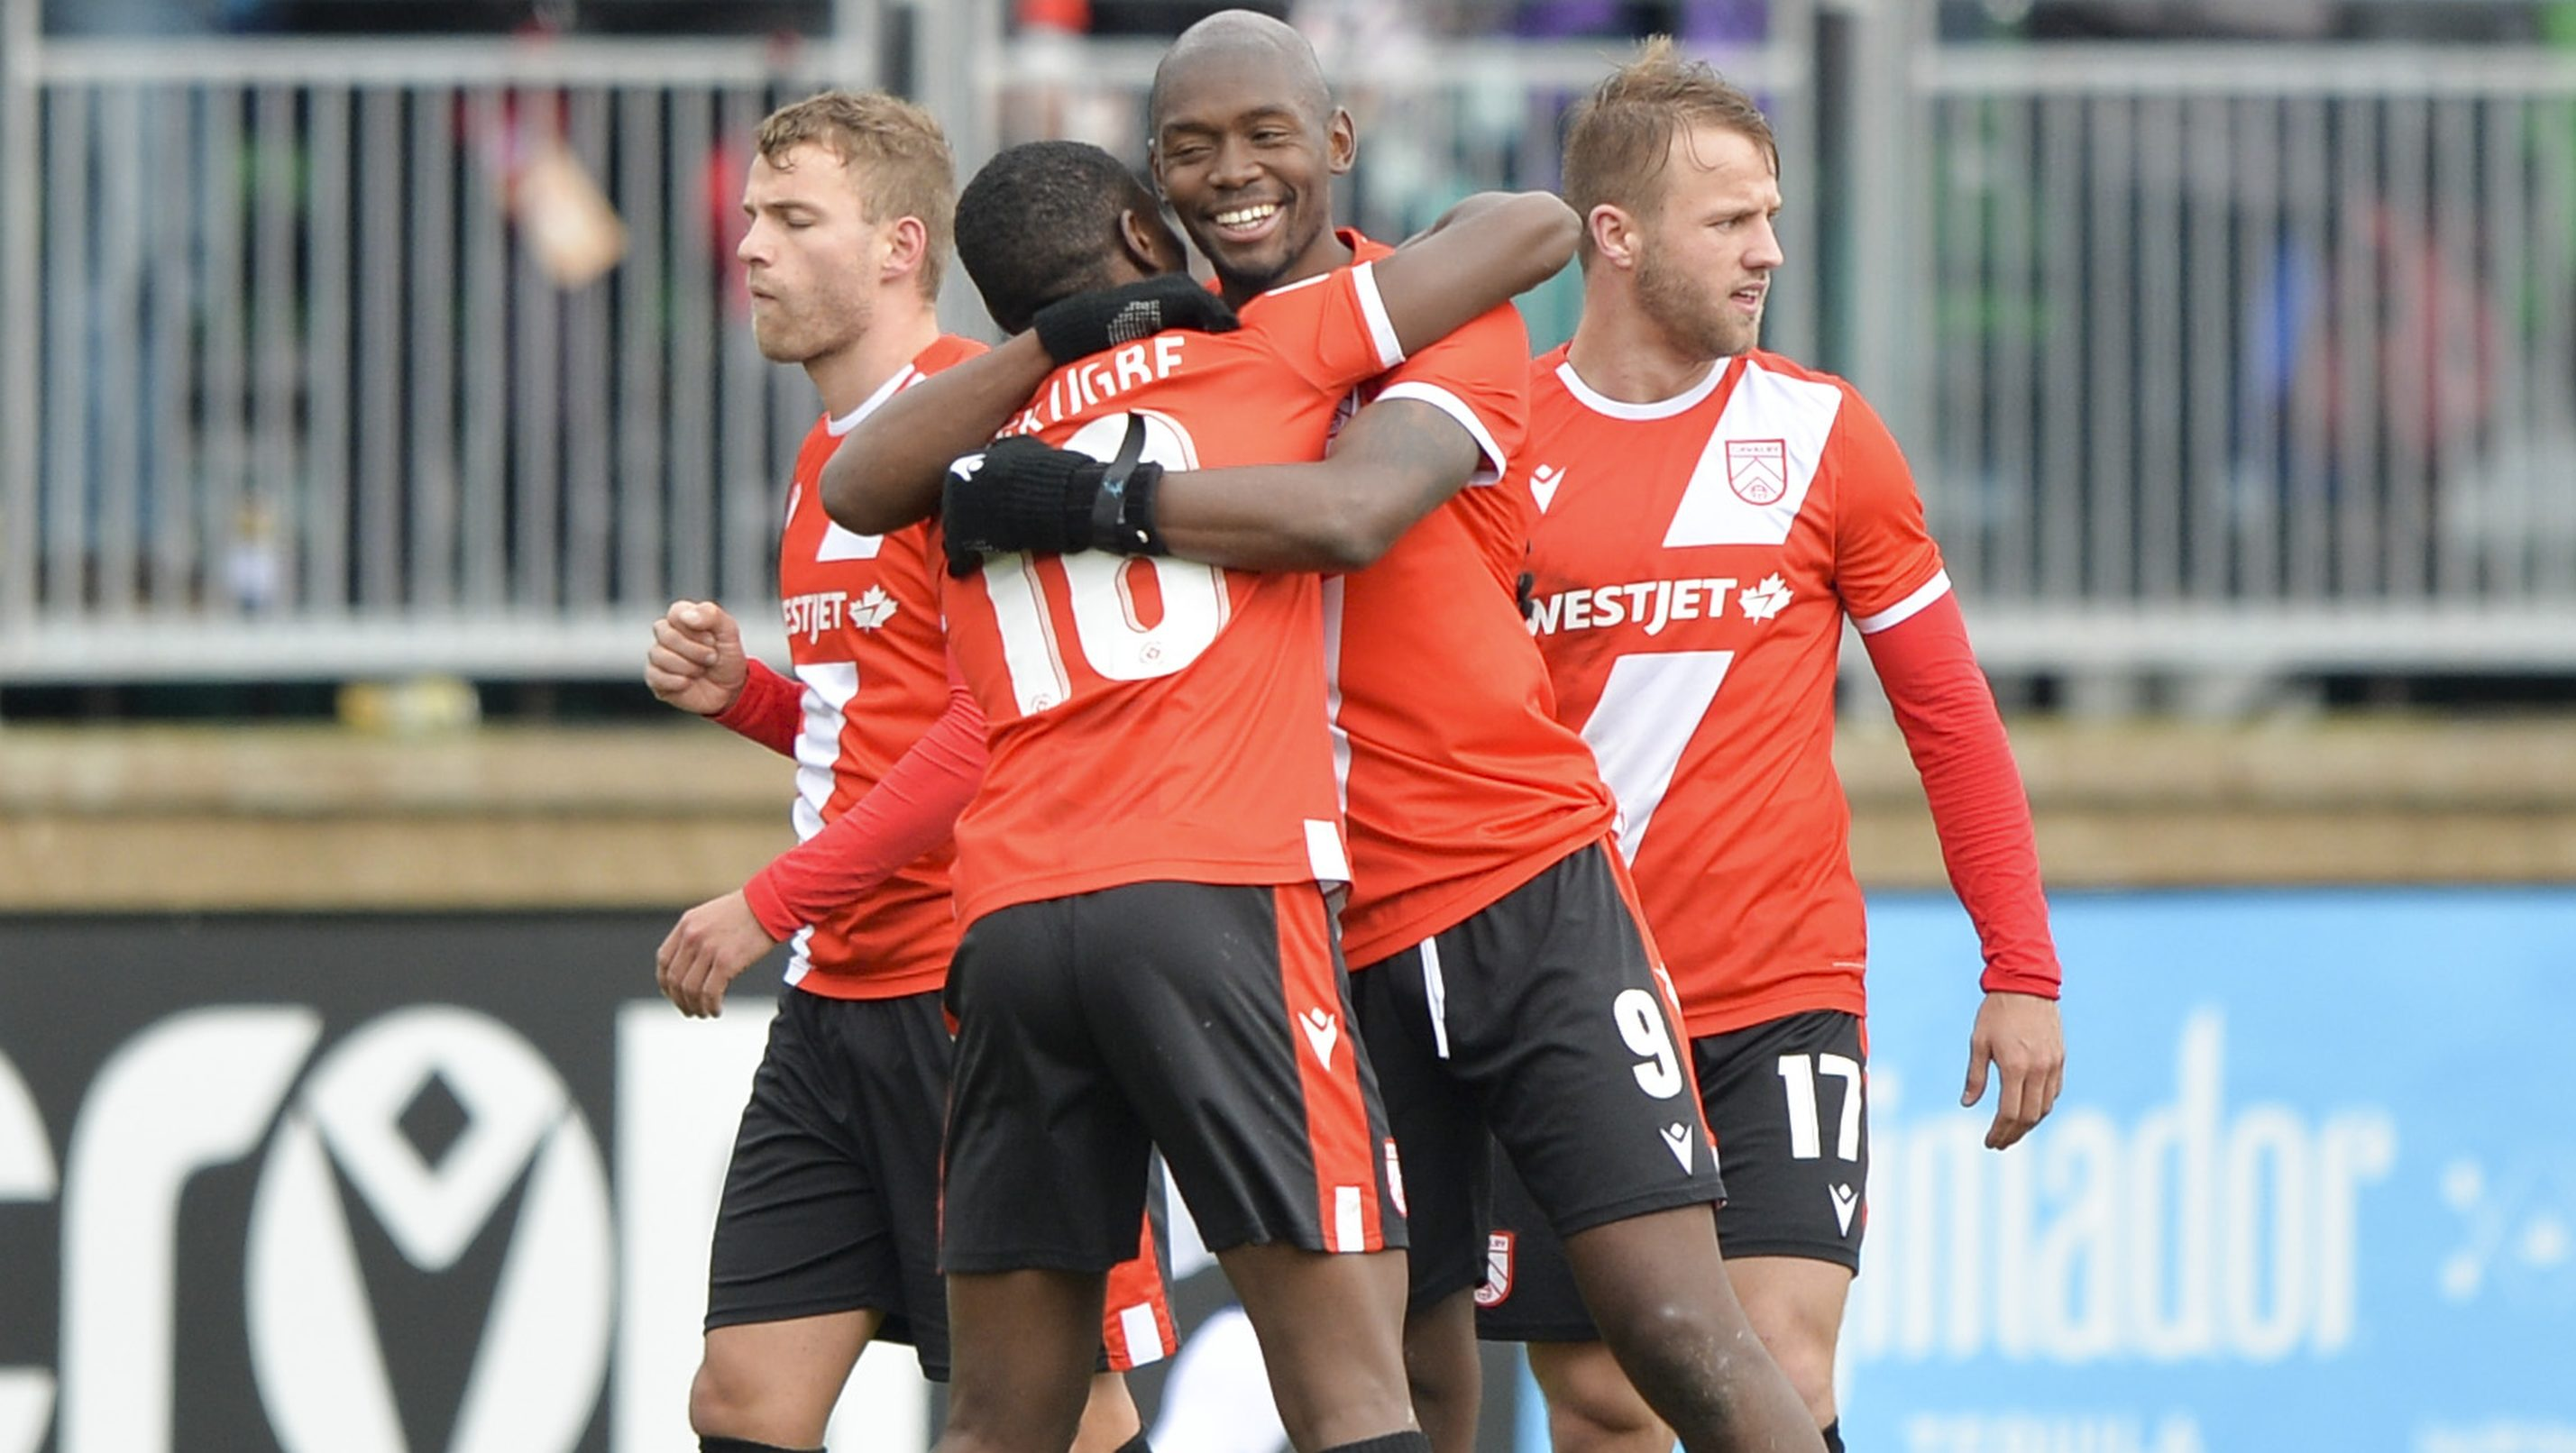 Cavalry FC celebrate a 1-0 win over Al Classico rivals FC Edmonton. (Mike Sturk/CPL).